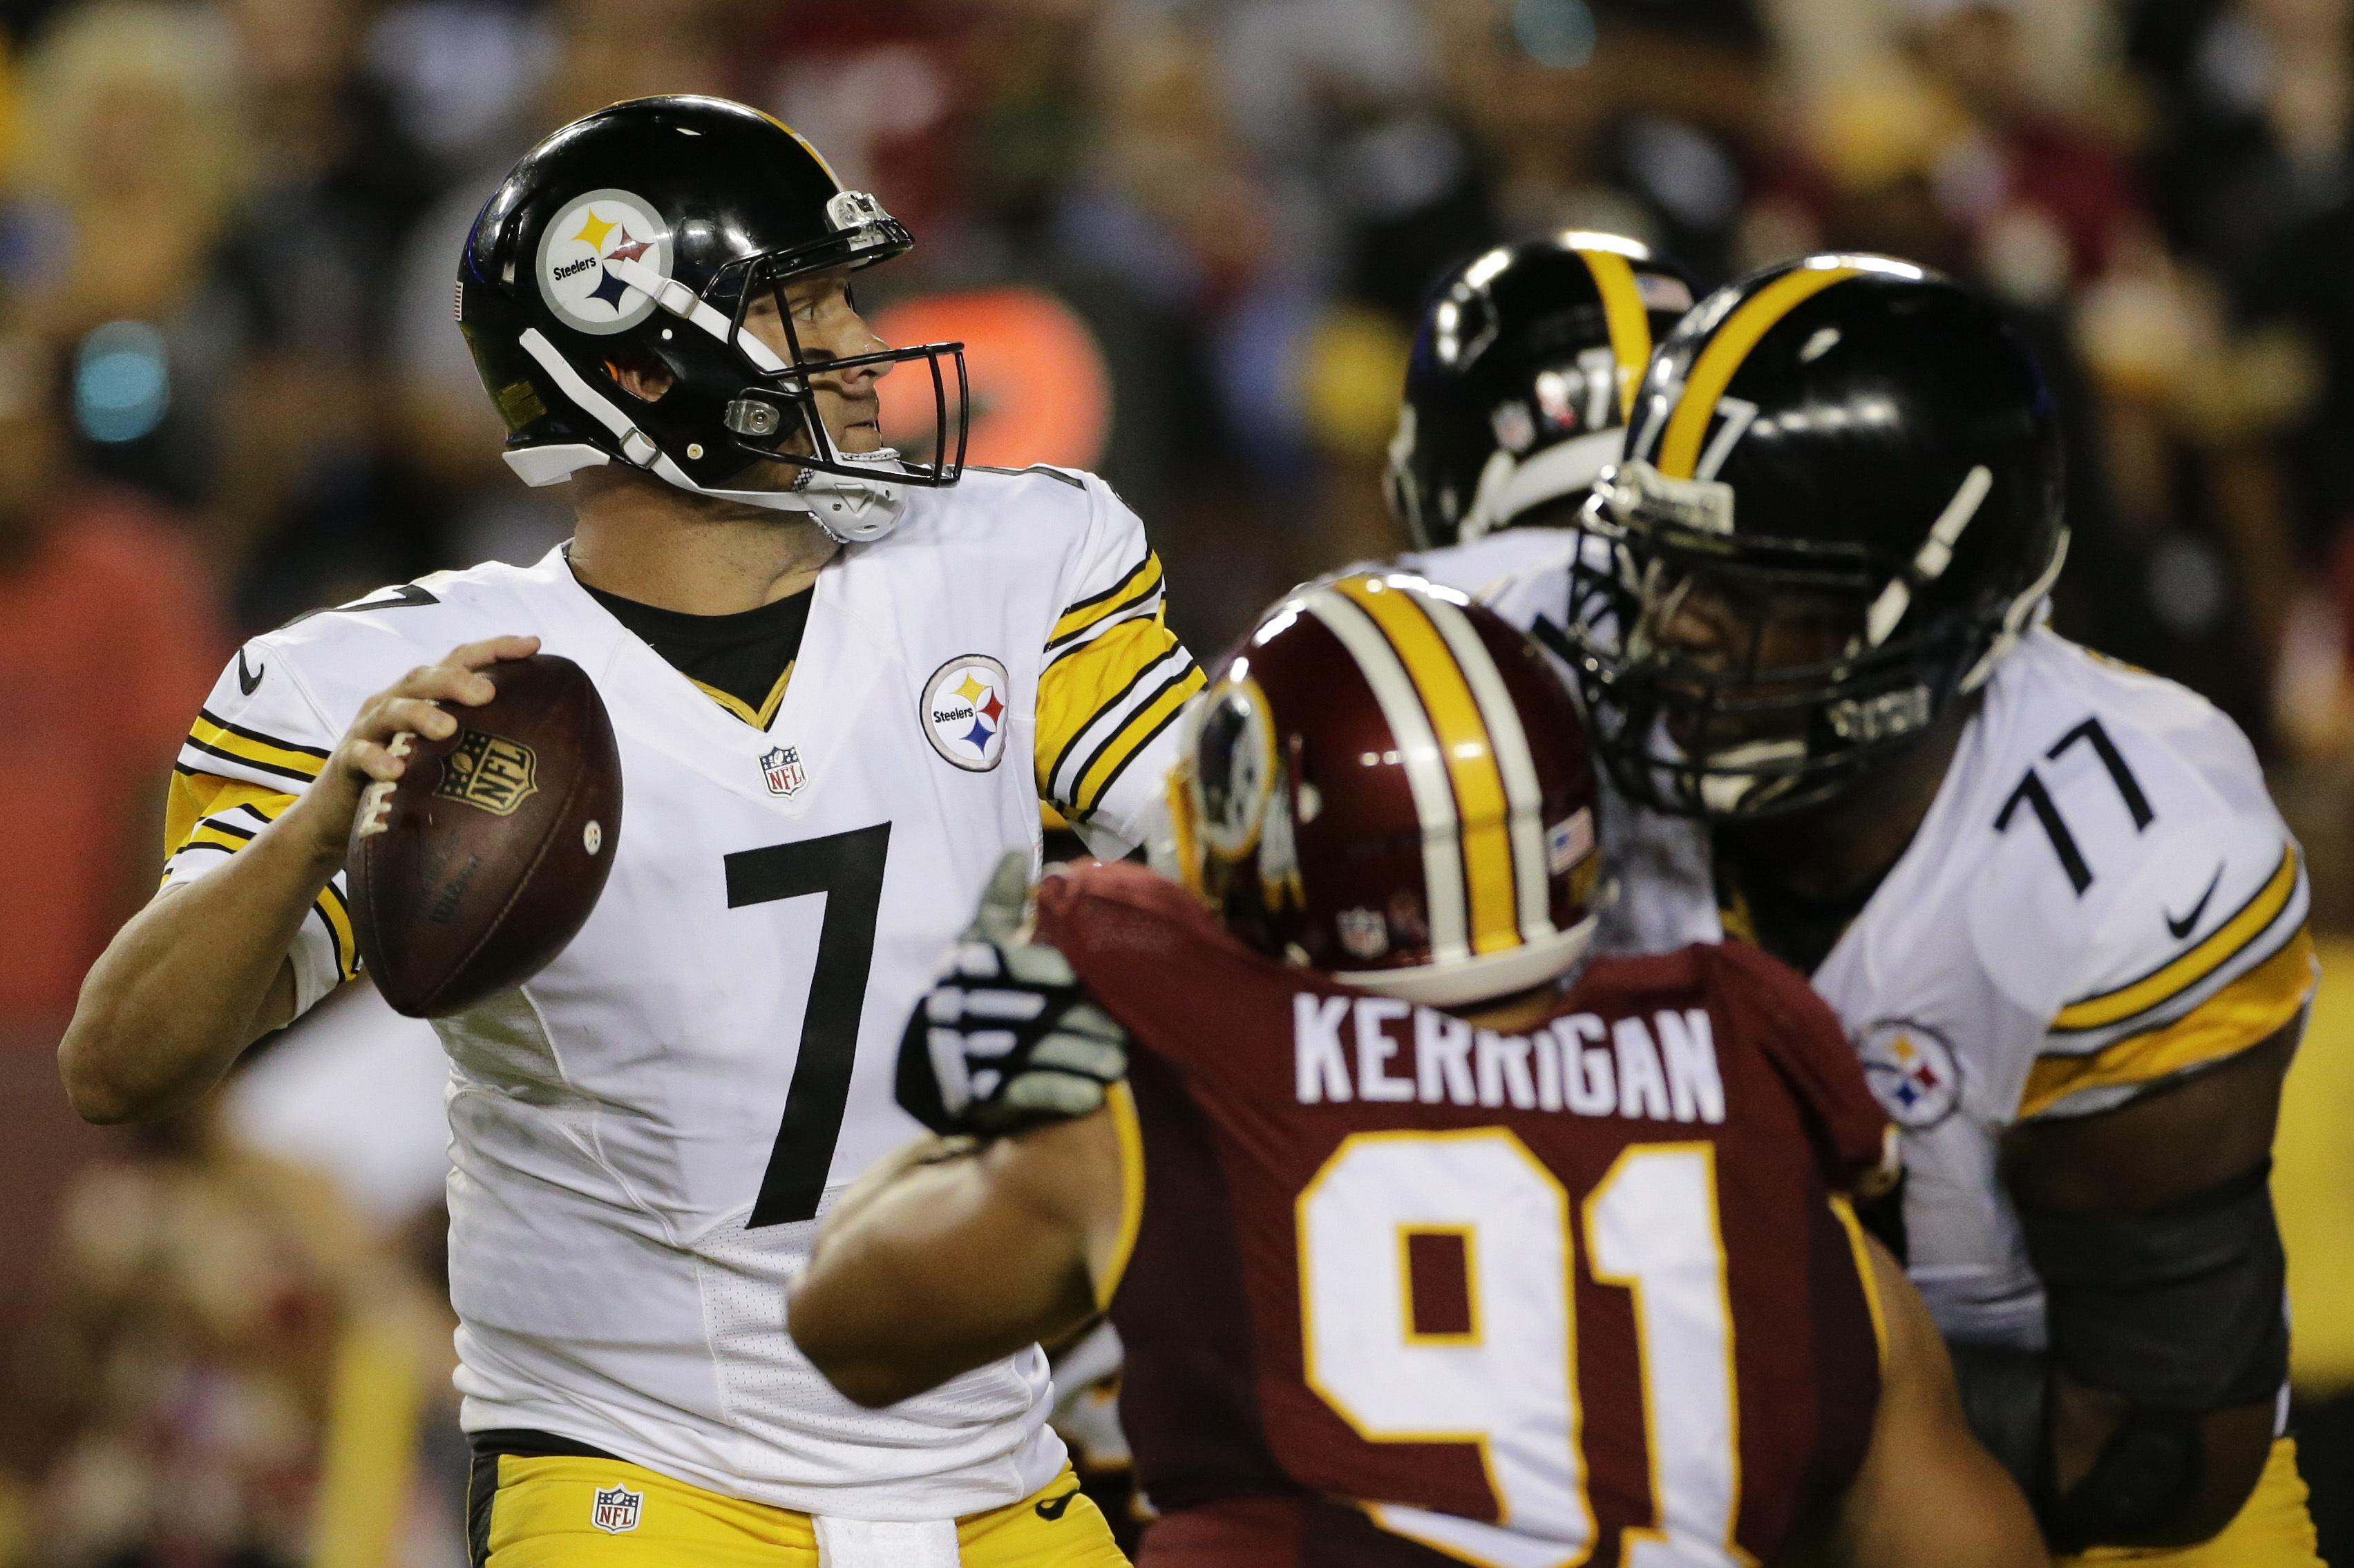 Pittsburgh Steelers Quarterback Ben Roethlisberger Looks For An Opening To Pass During The First Half Of